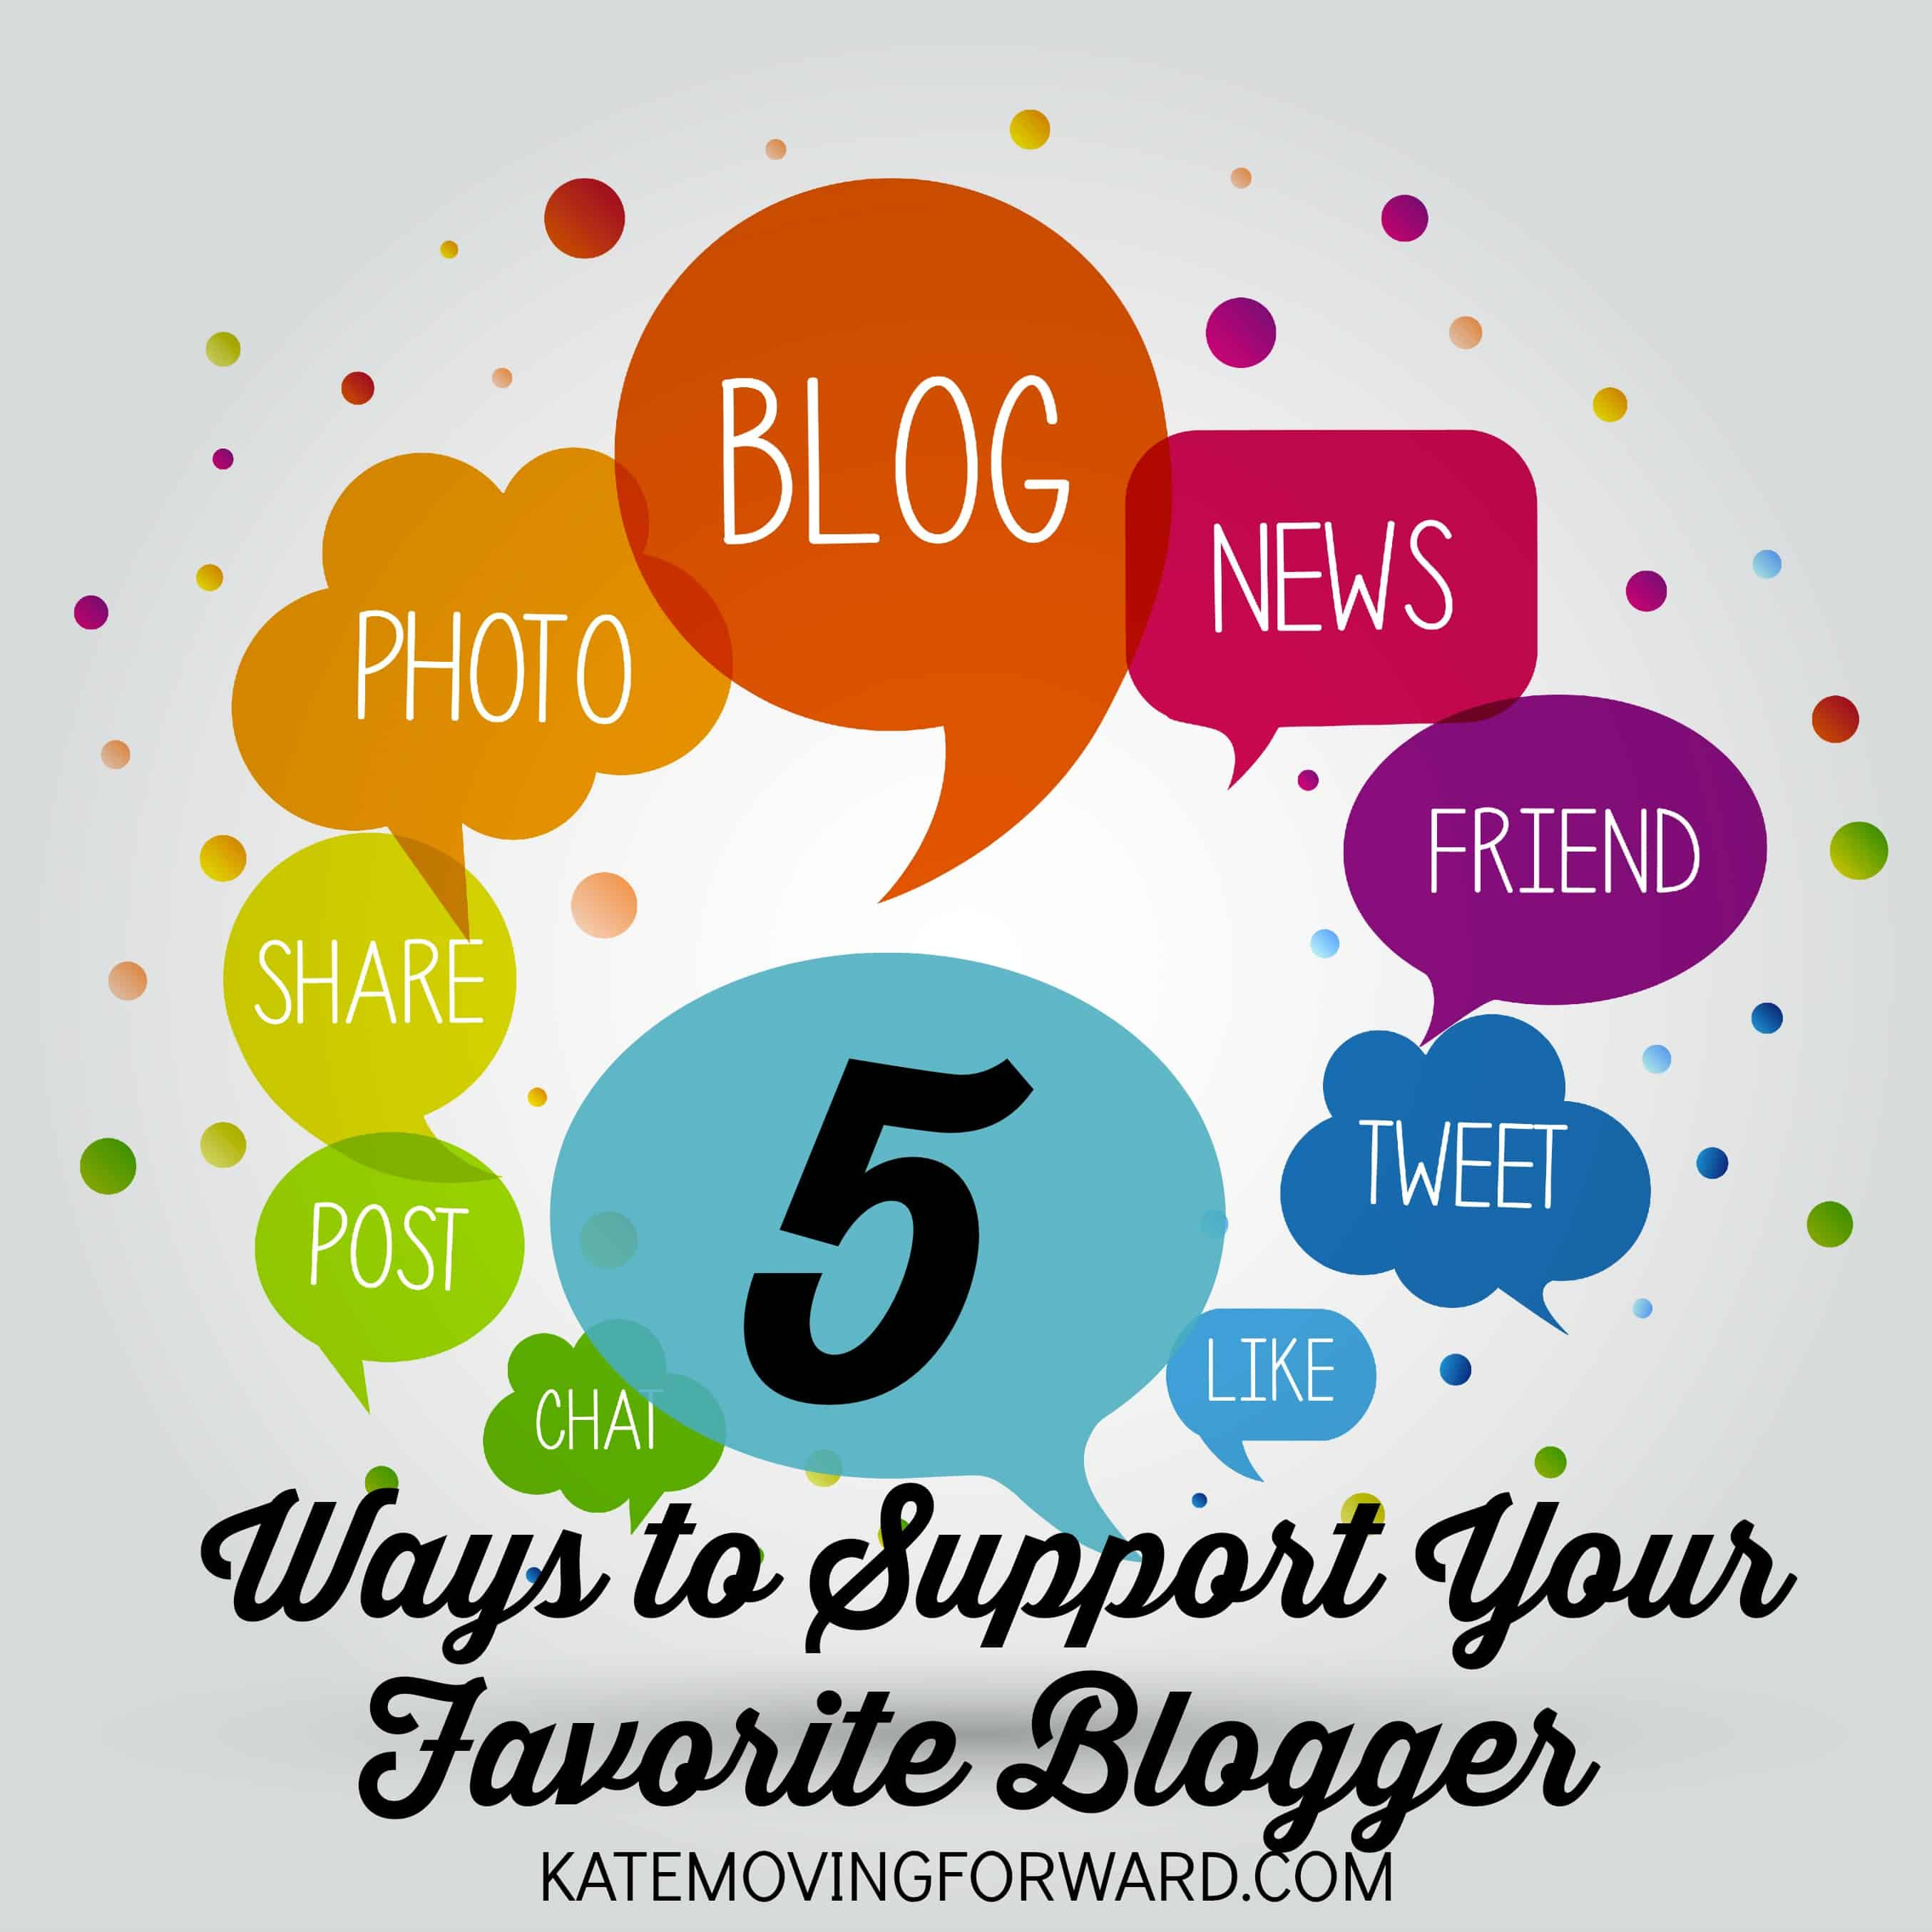 5 ways to support your favorite blogger